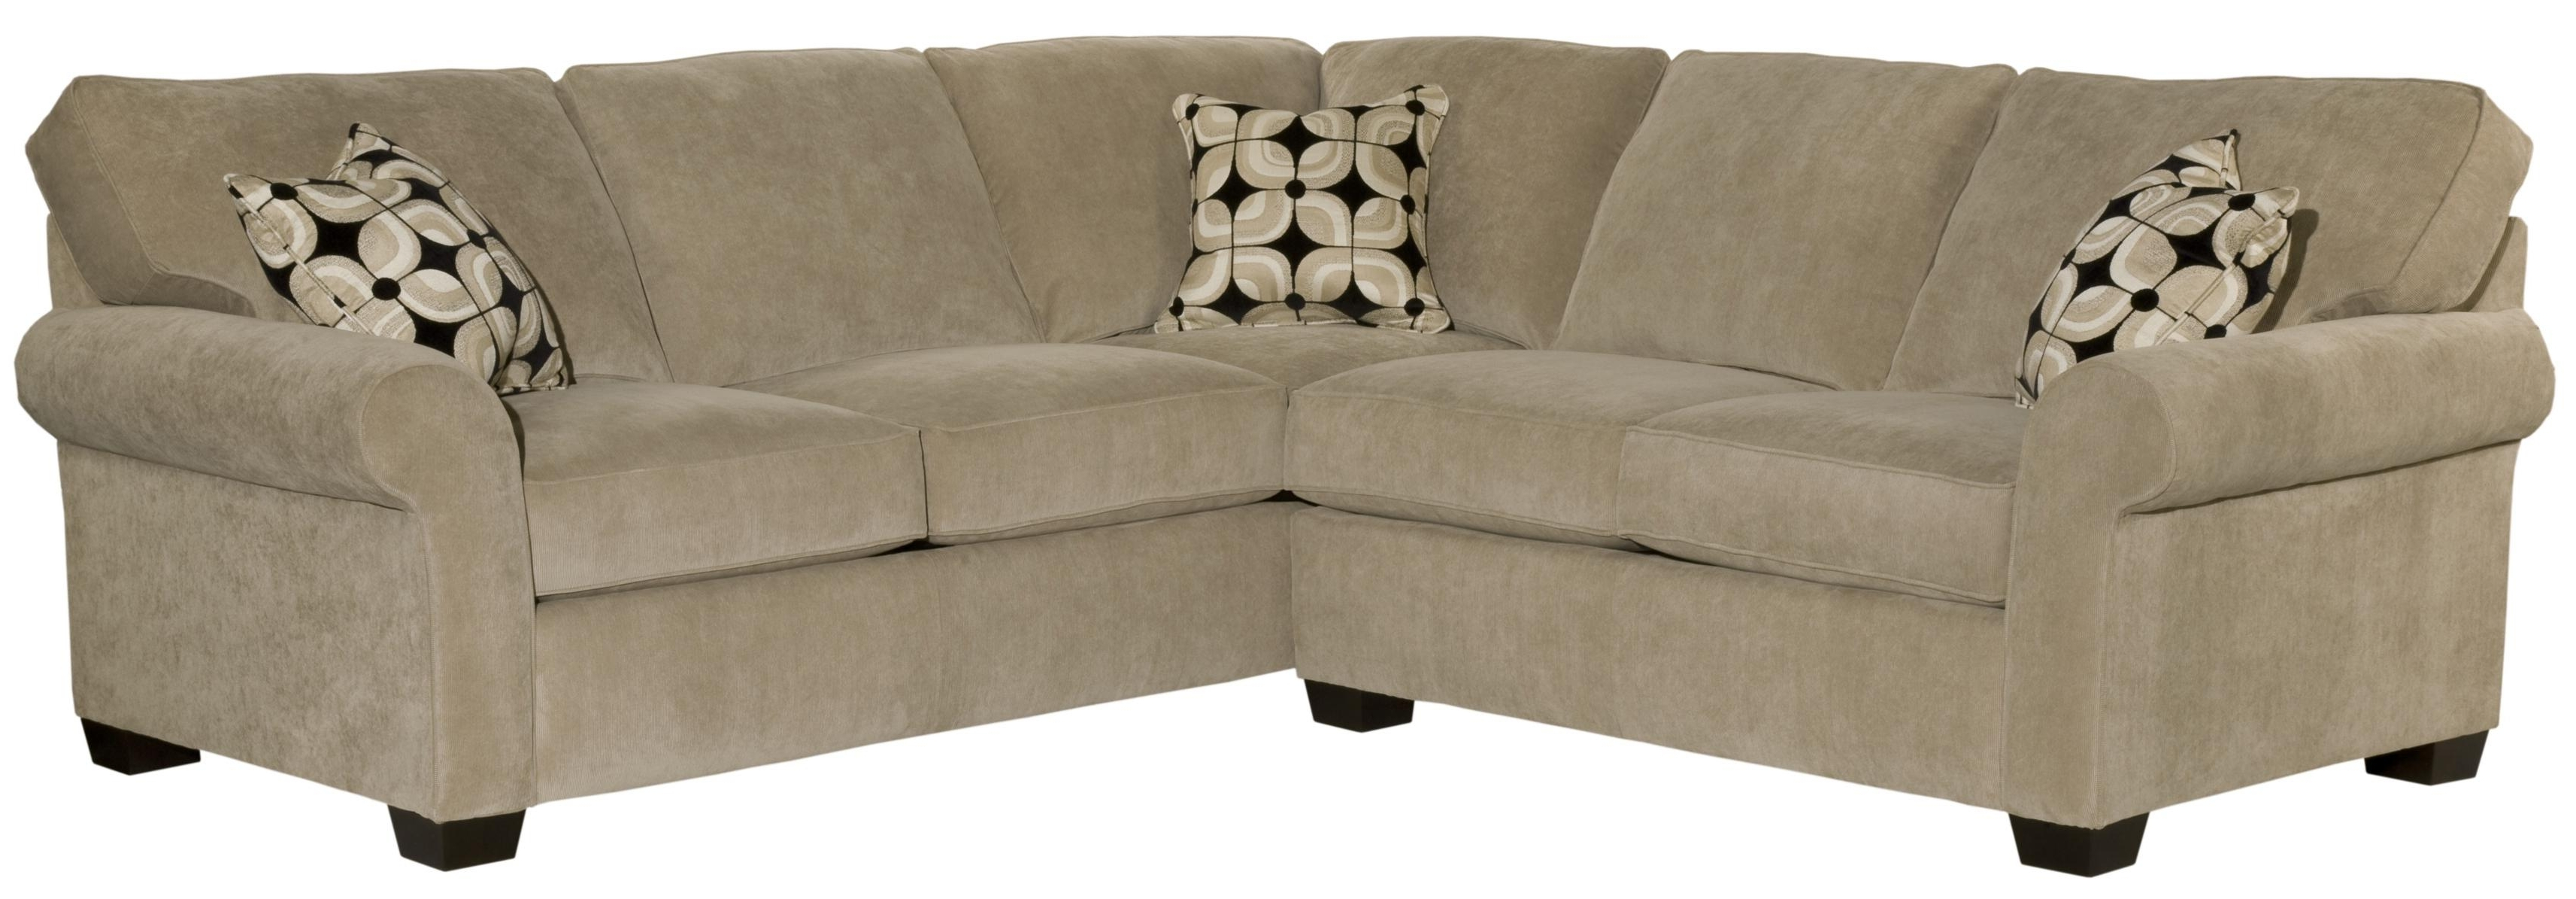 Broyhill Furniture Ethan Two Piece Sectional With Corner Sofa With Best And Newest Broyhill Sectional Sofas (View 1 of 20)